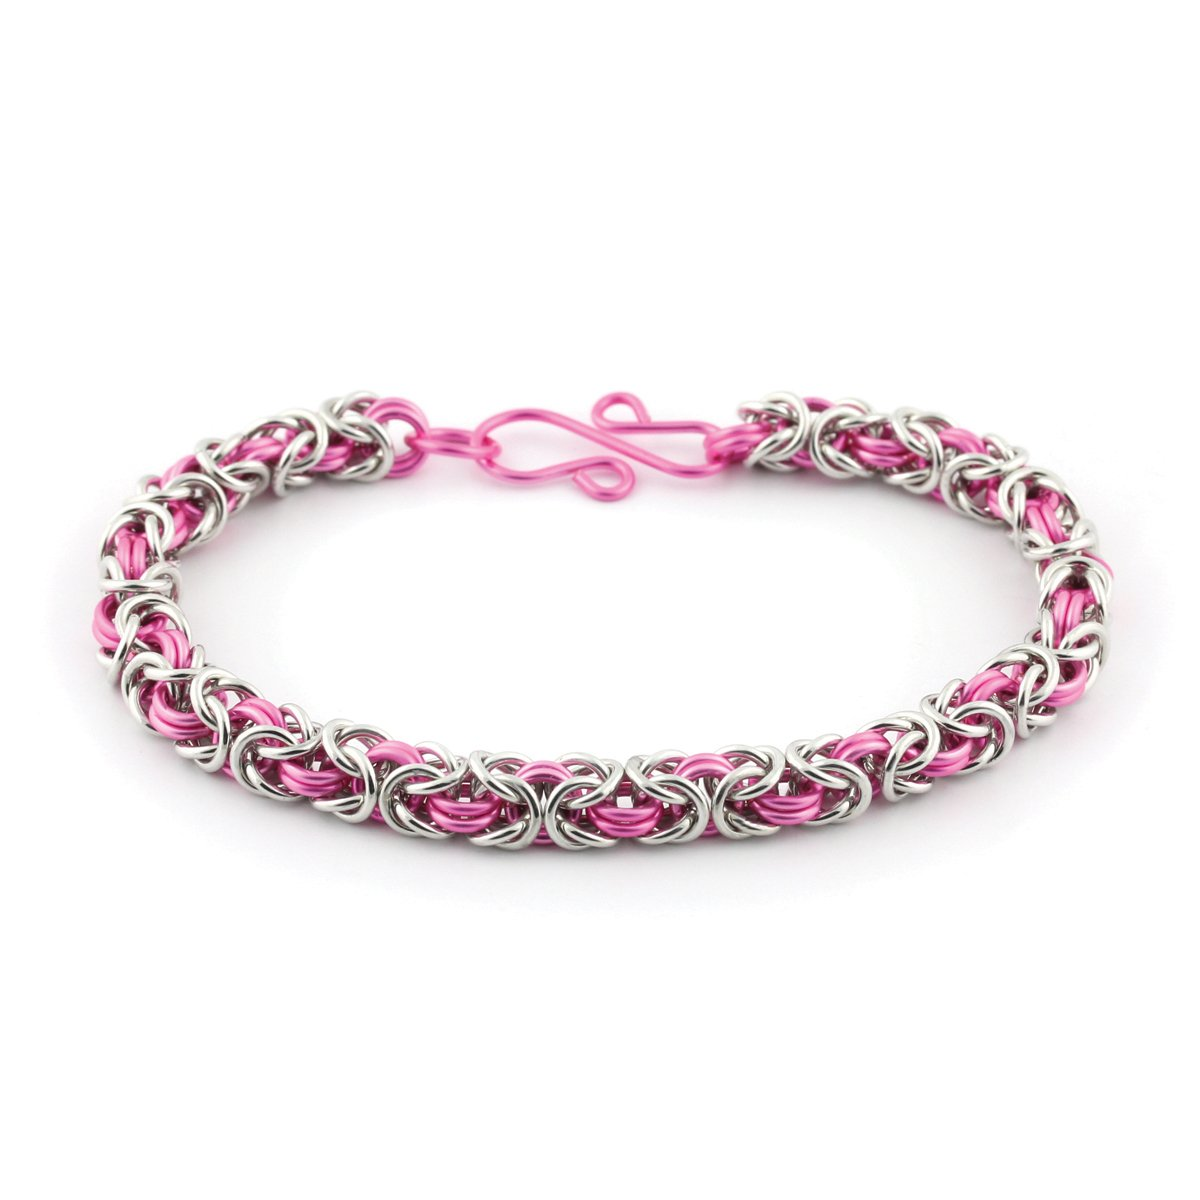 Weave Got Maille 2-Color Byzantine Chain Maille Bracelet Kit Pacific Blue and Silver